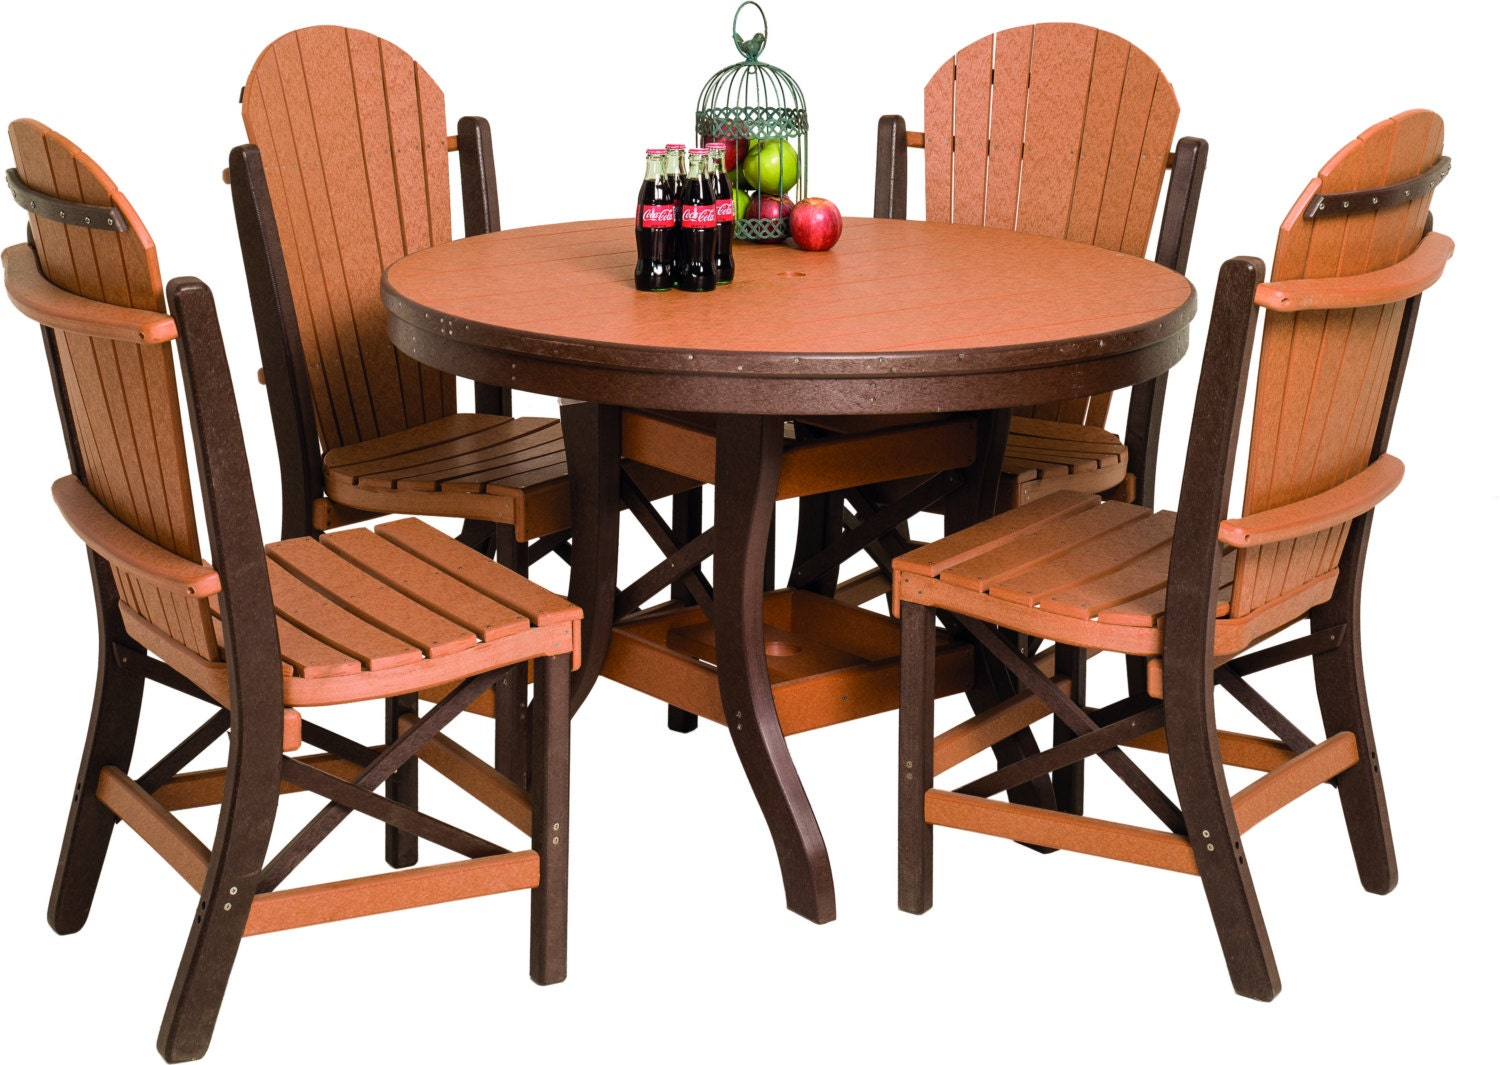 recycled poly lumber 60 inch round outdoor dining table with 6. Black Bedroom Furniture Sets. Home Design Ideas